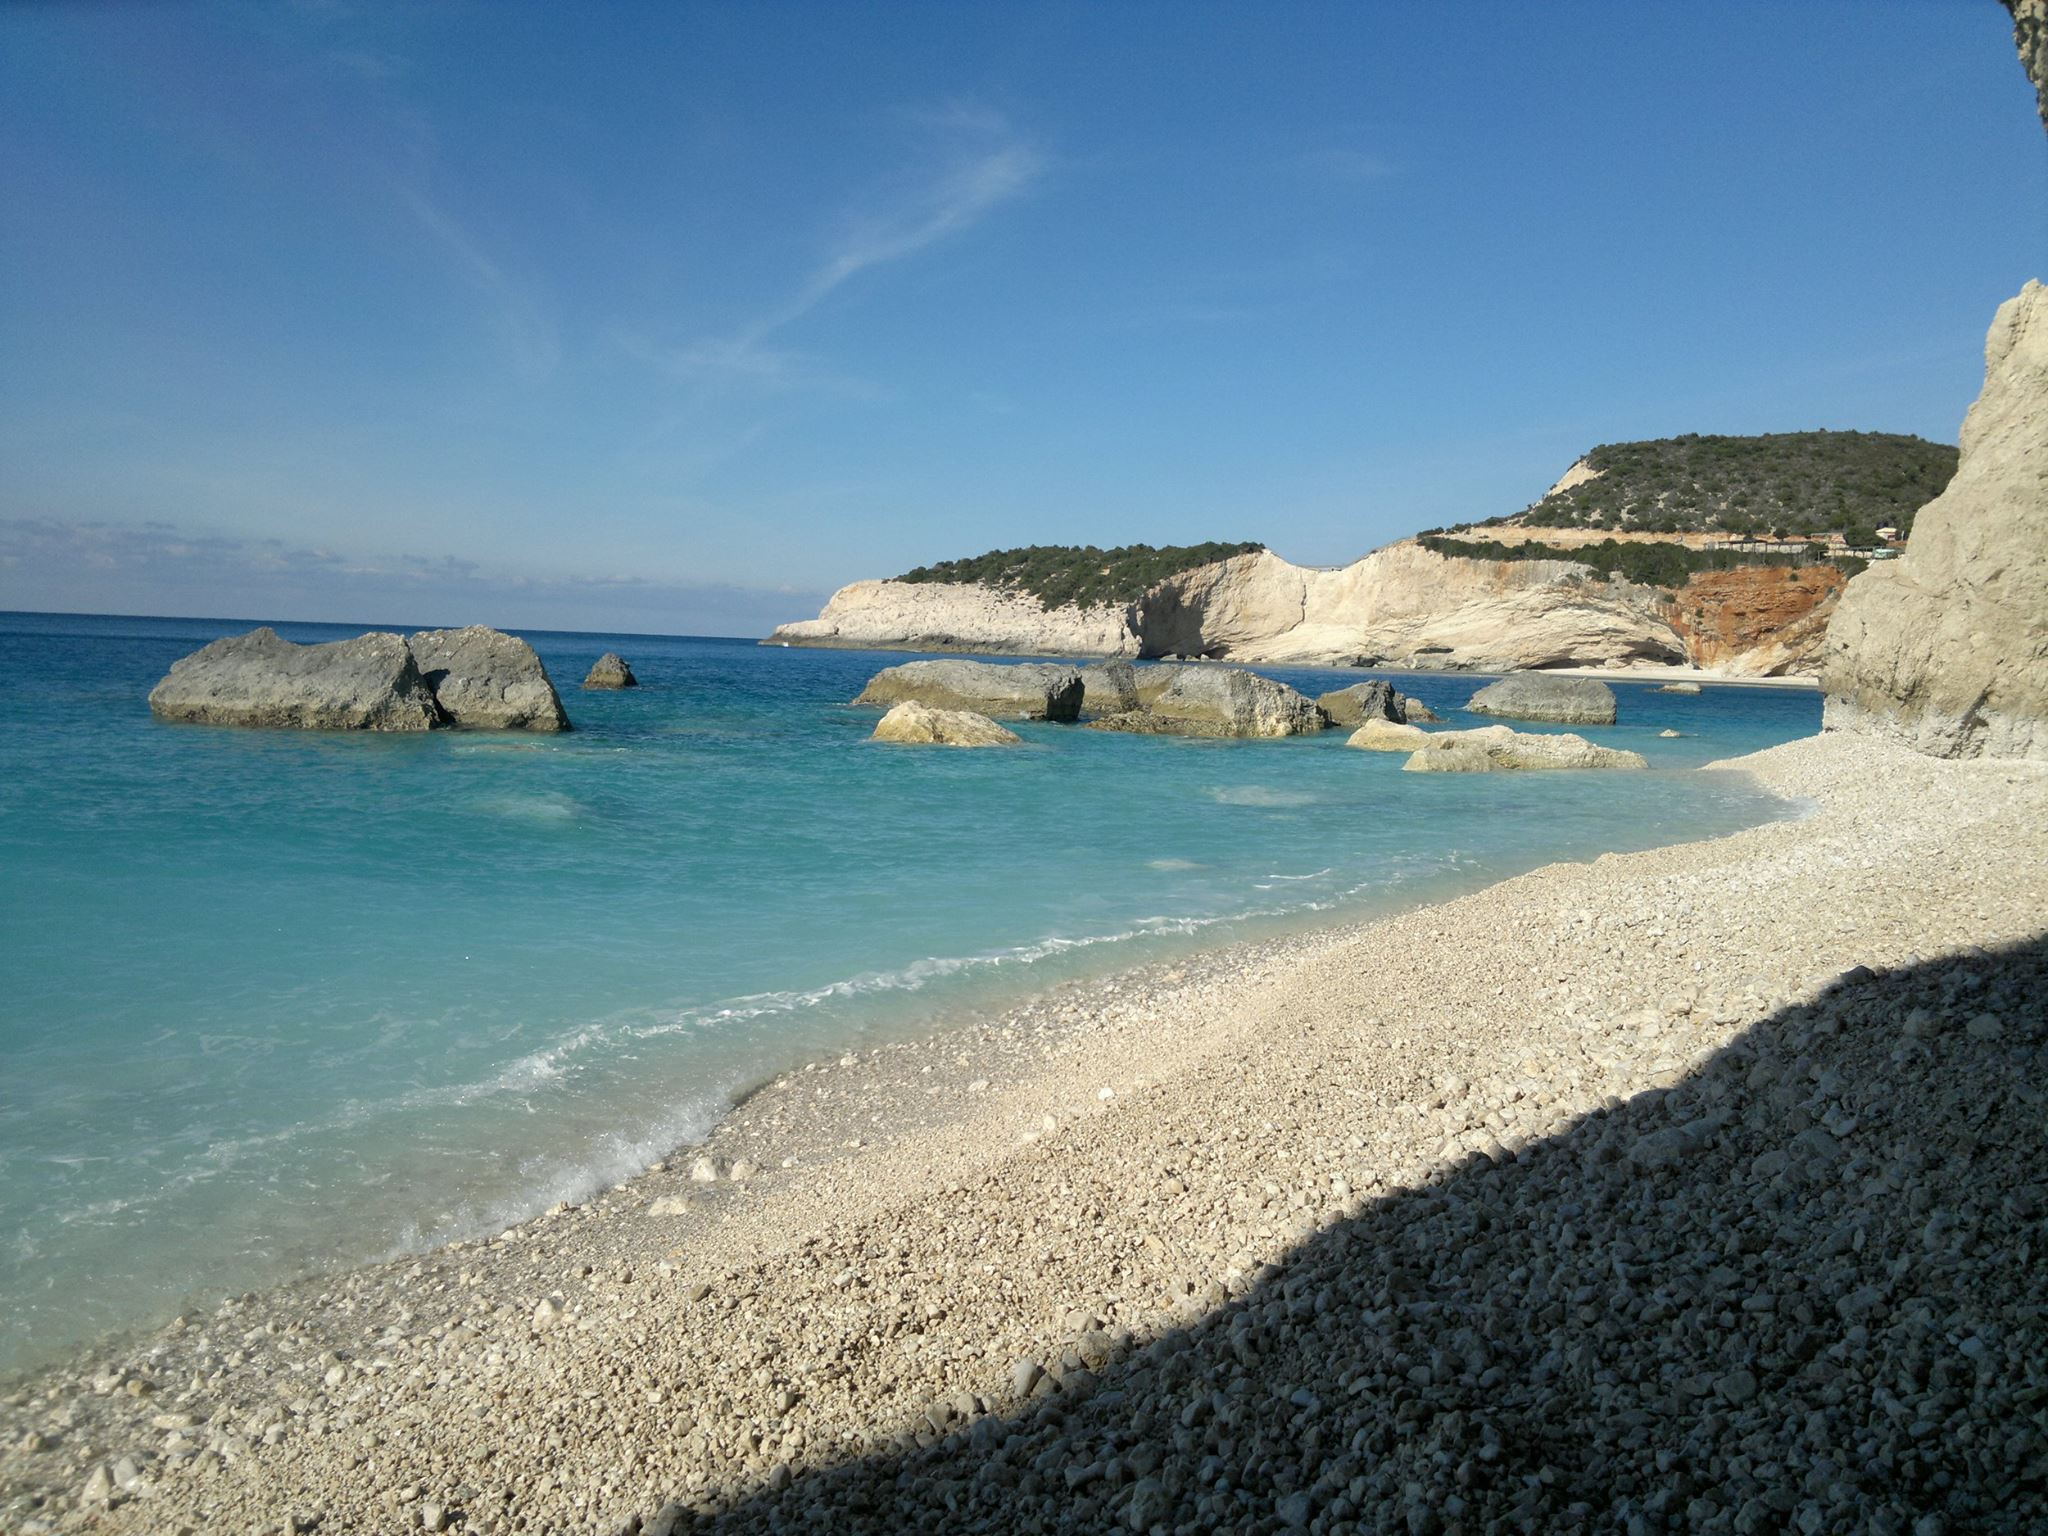 lefkada-beaches-porto-katsiki-beach-view